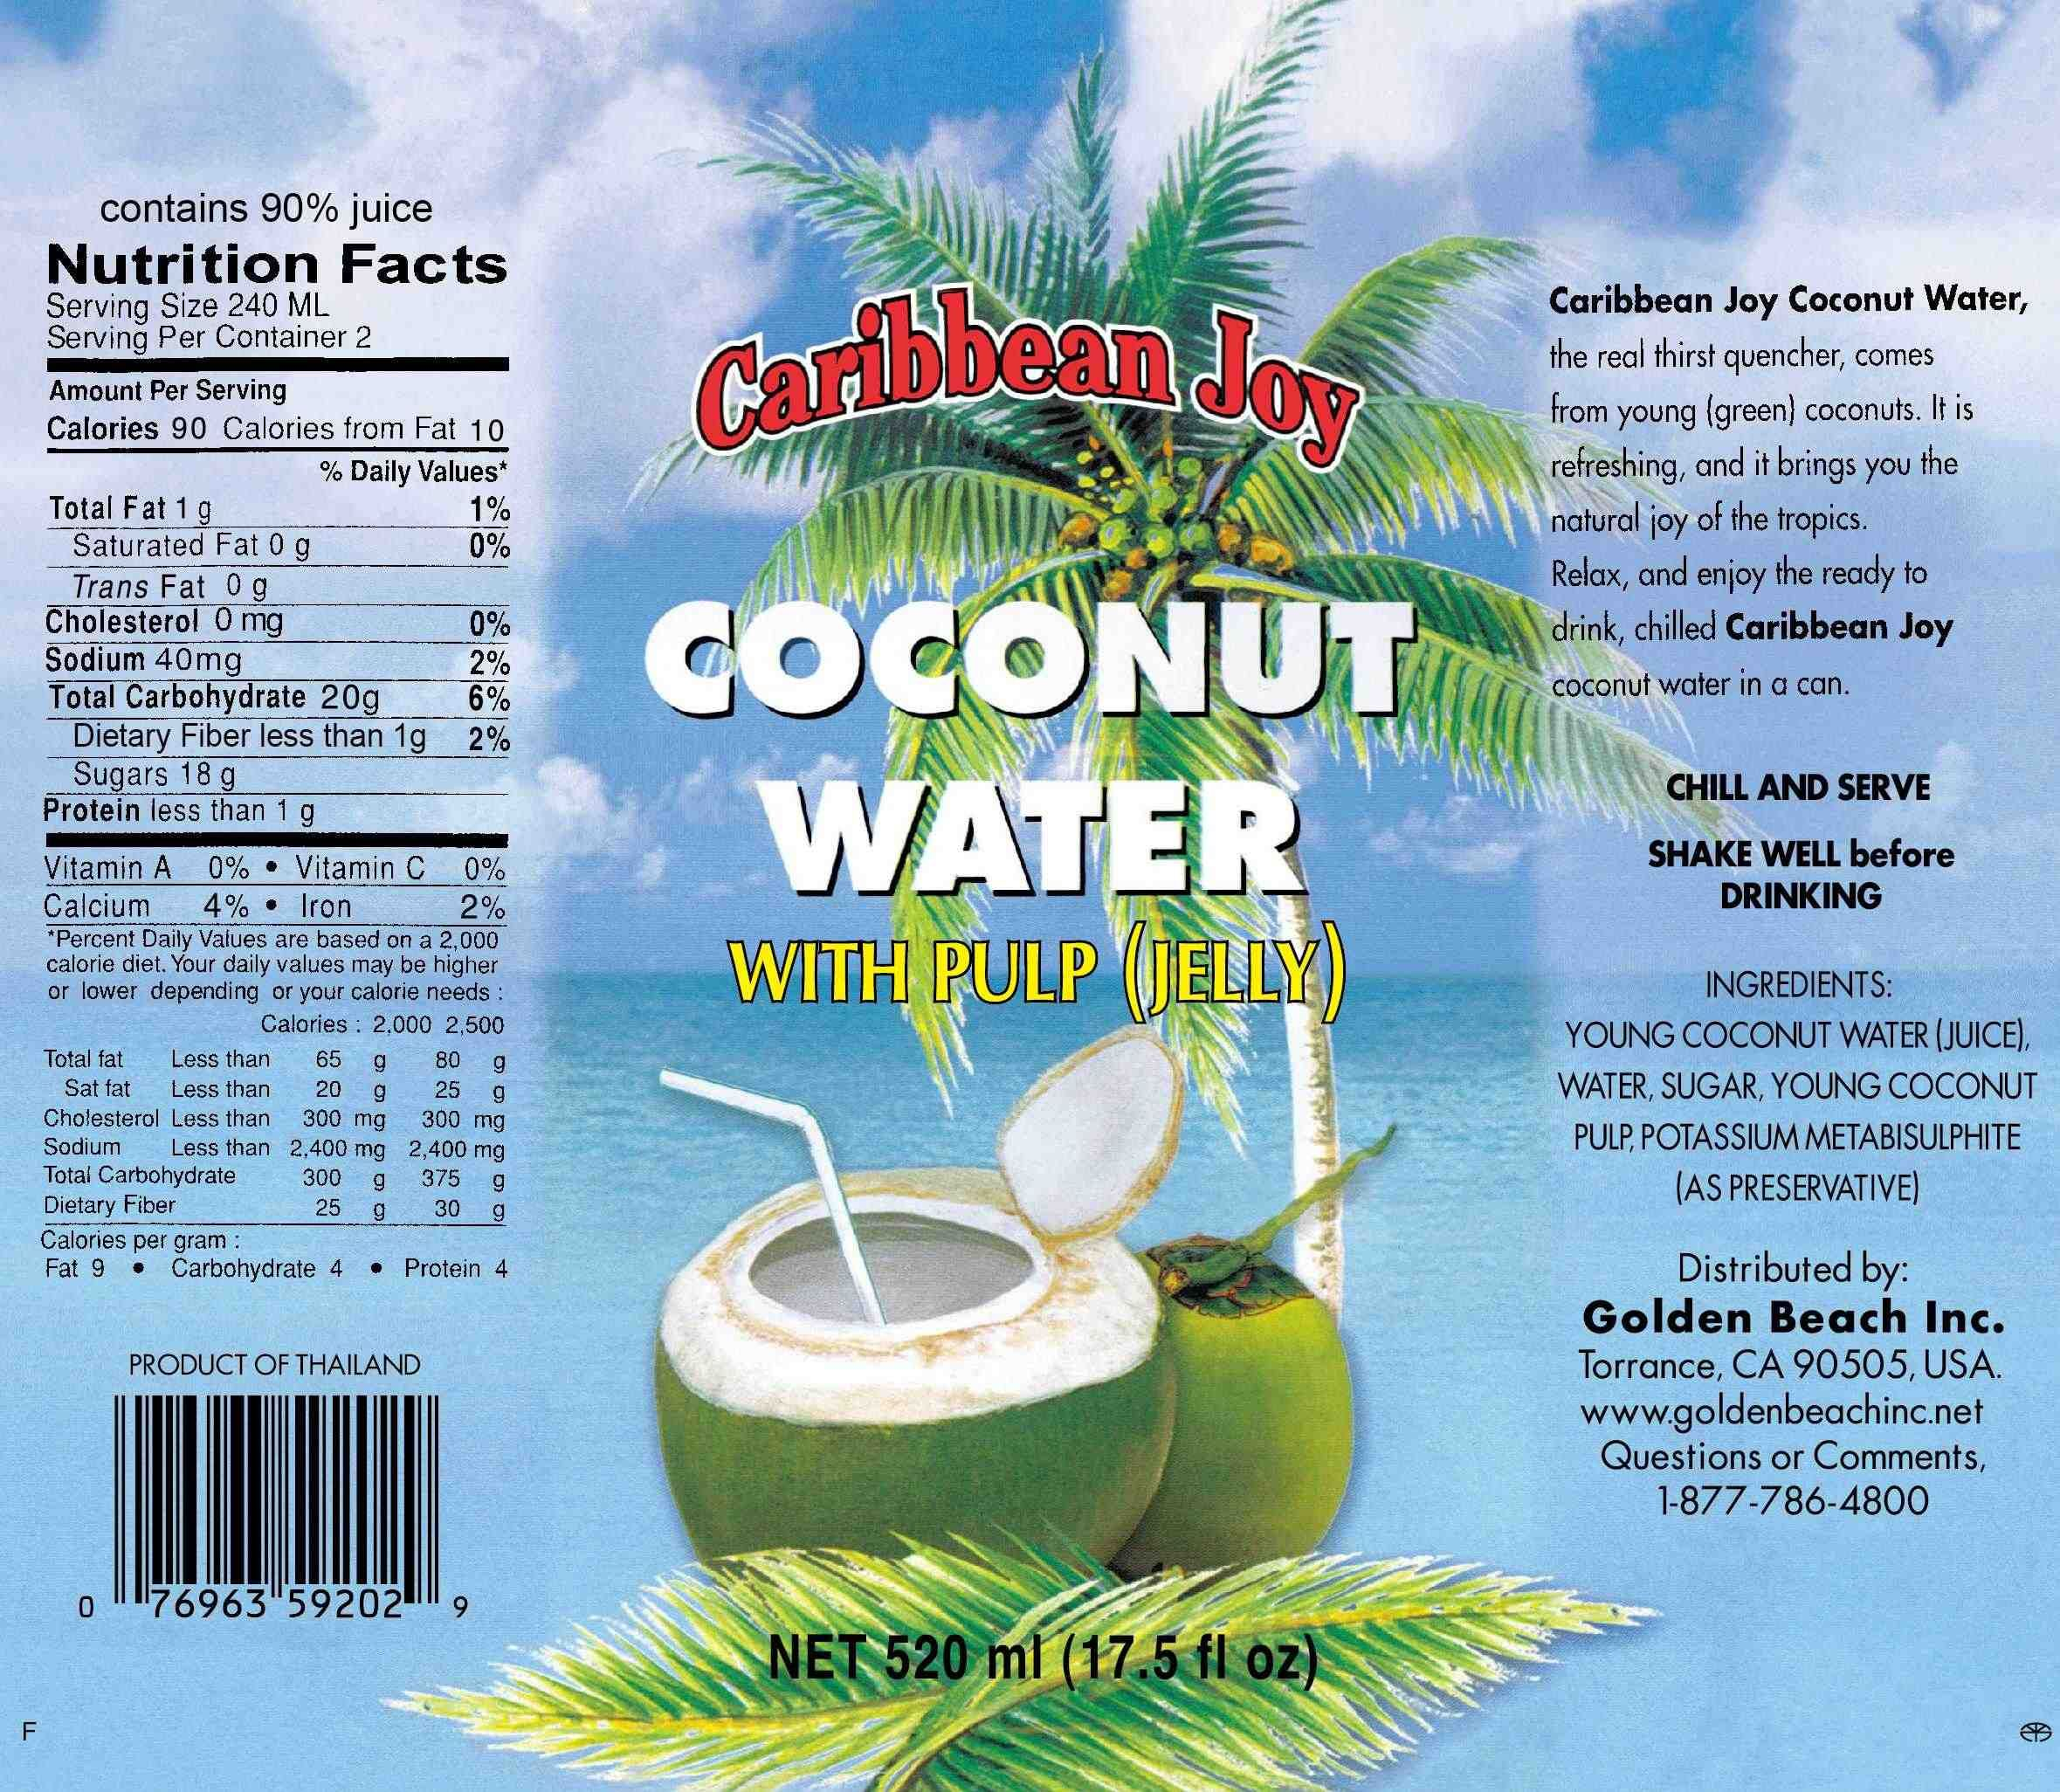 Coconut Water Bottle Graphics Google Search Coconut Water Nutrition Facts Coconut